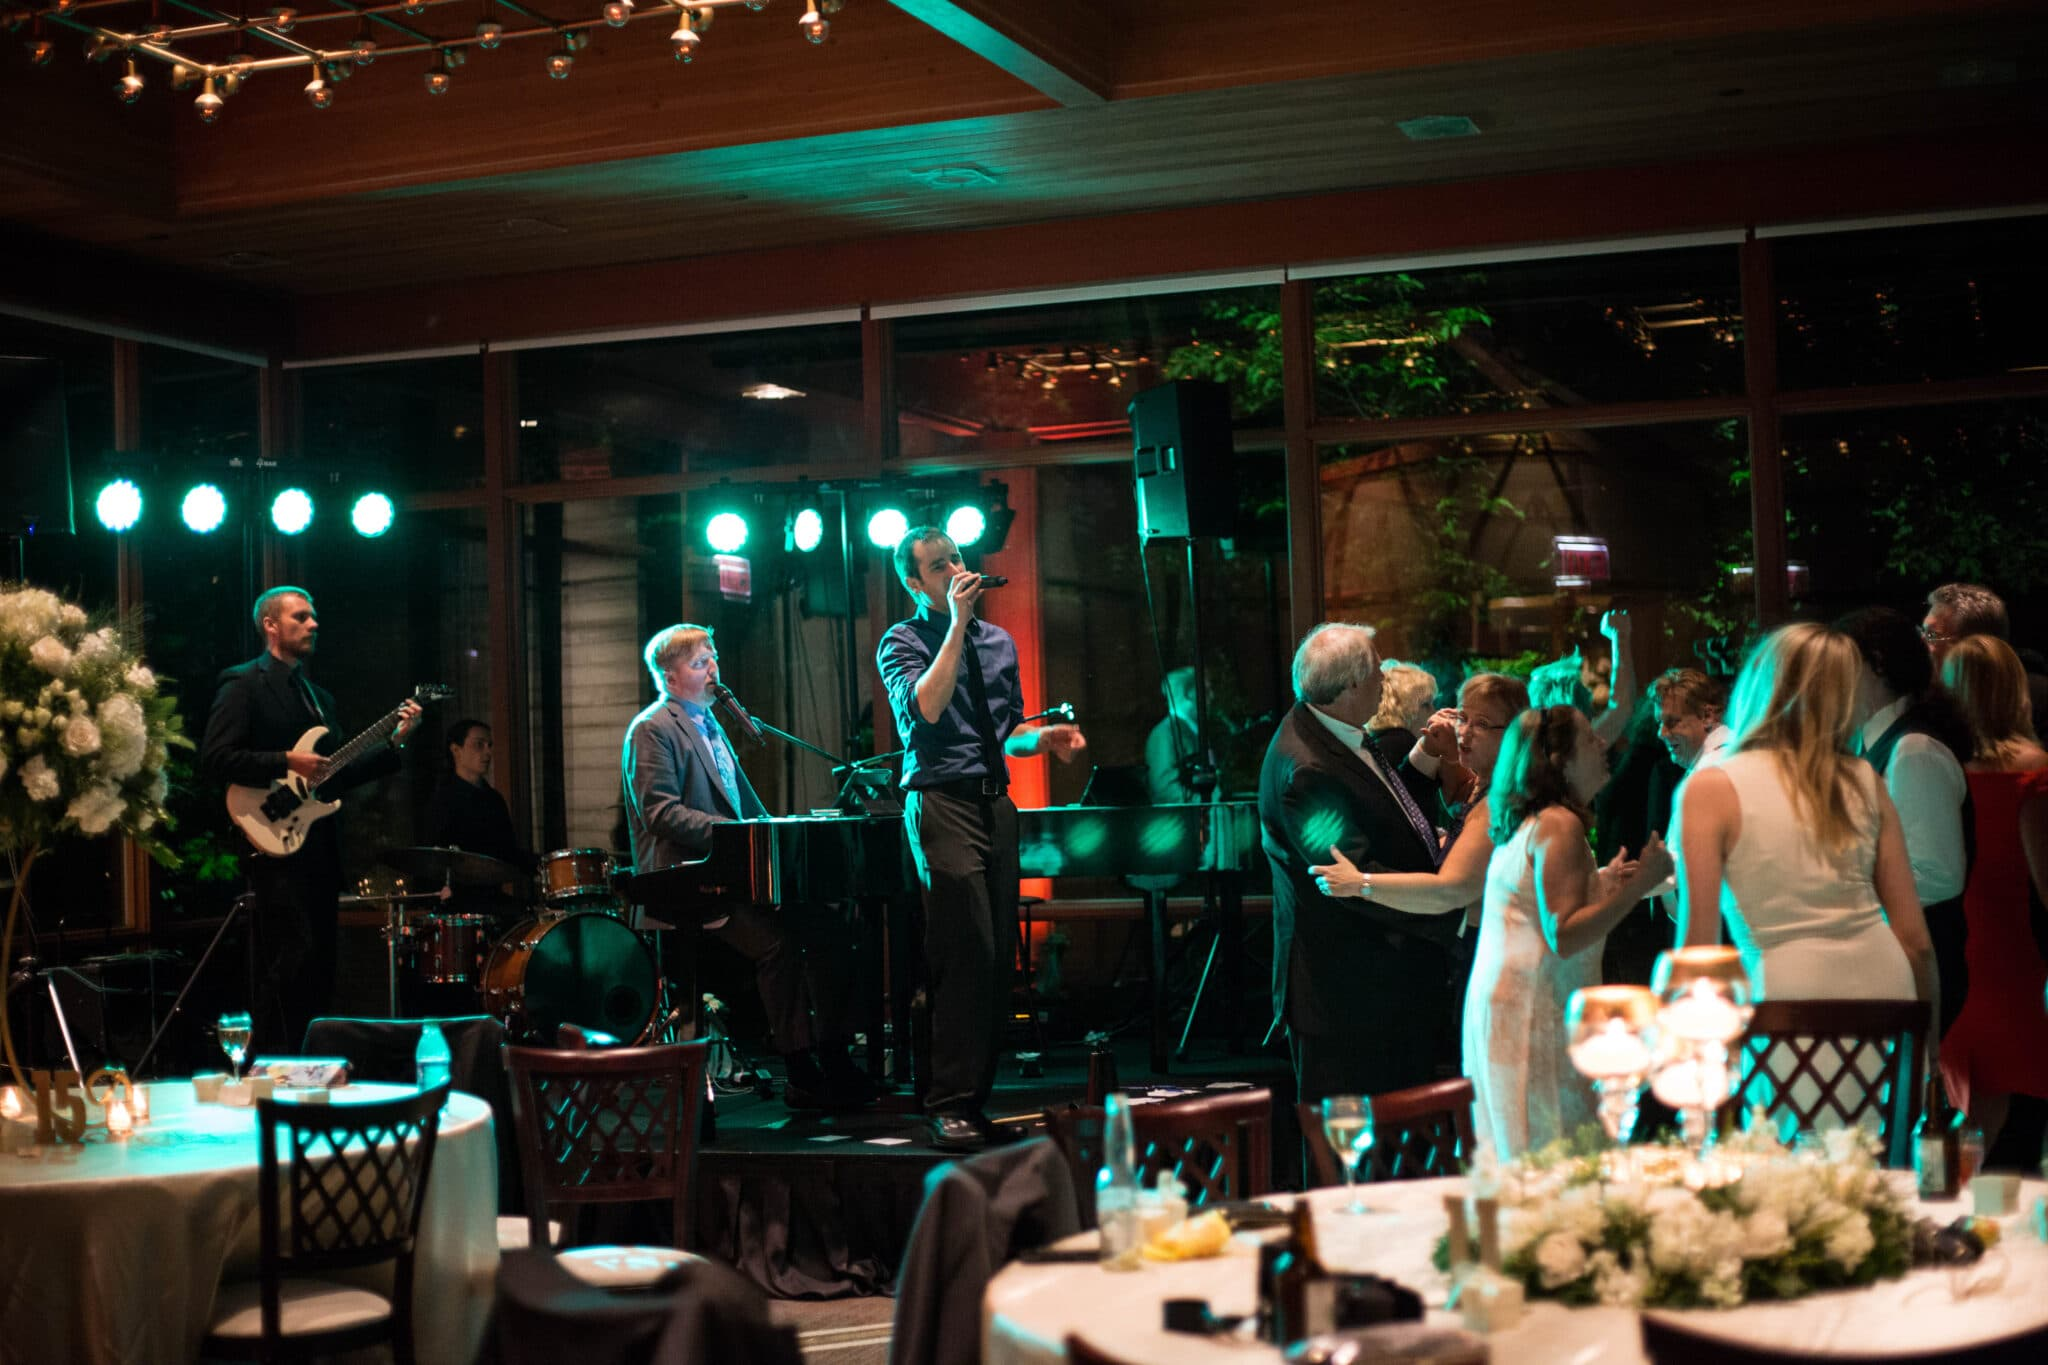 Felix and Fingers Dueling Pianos while guests dancing at wedding